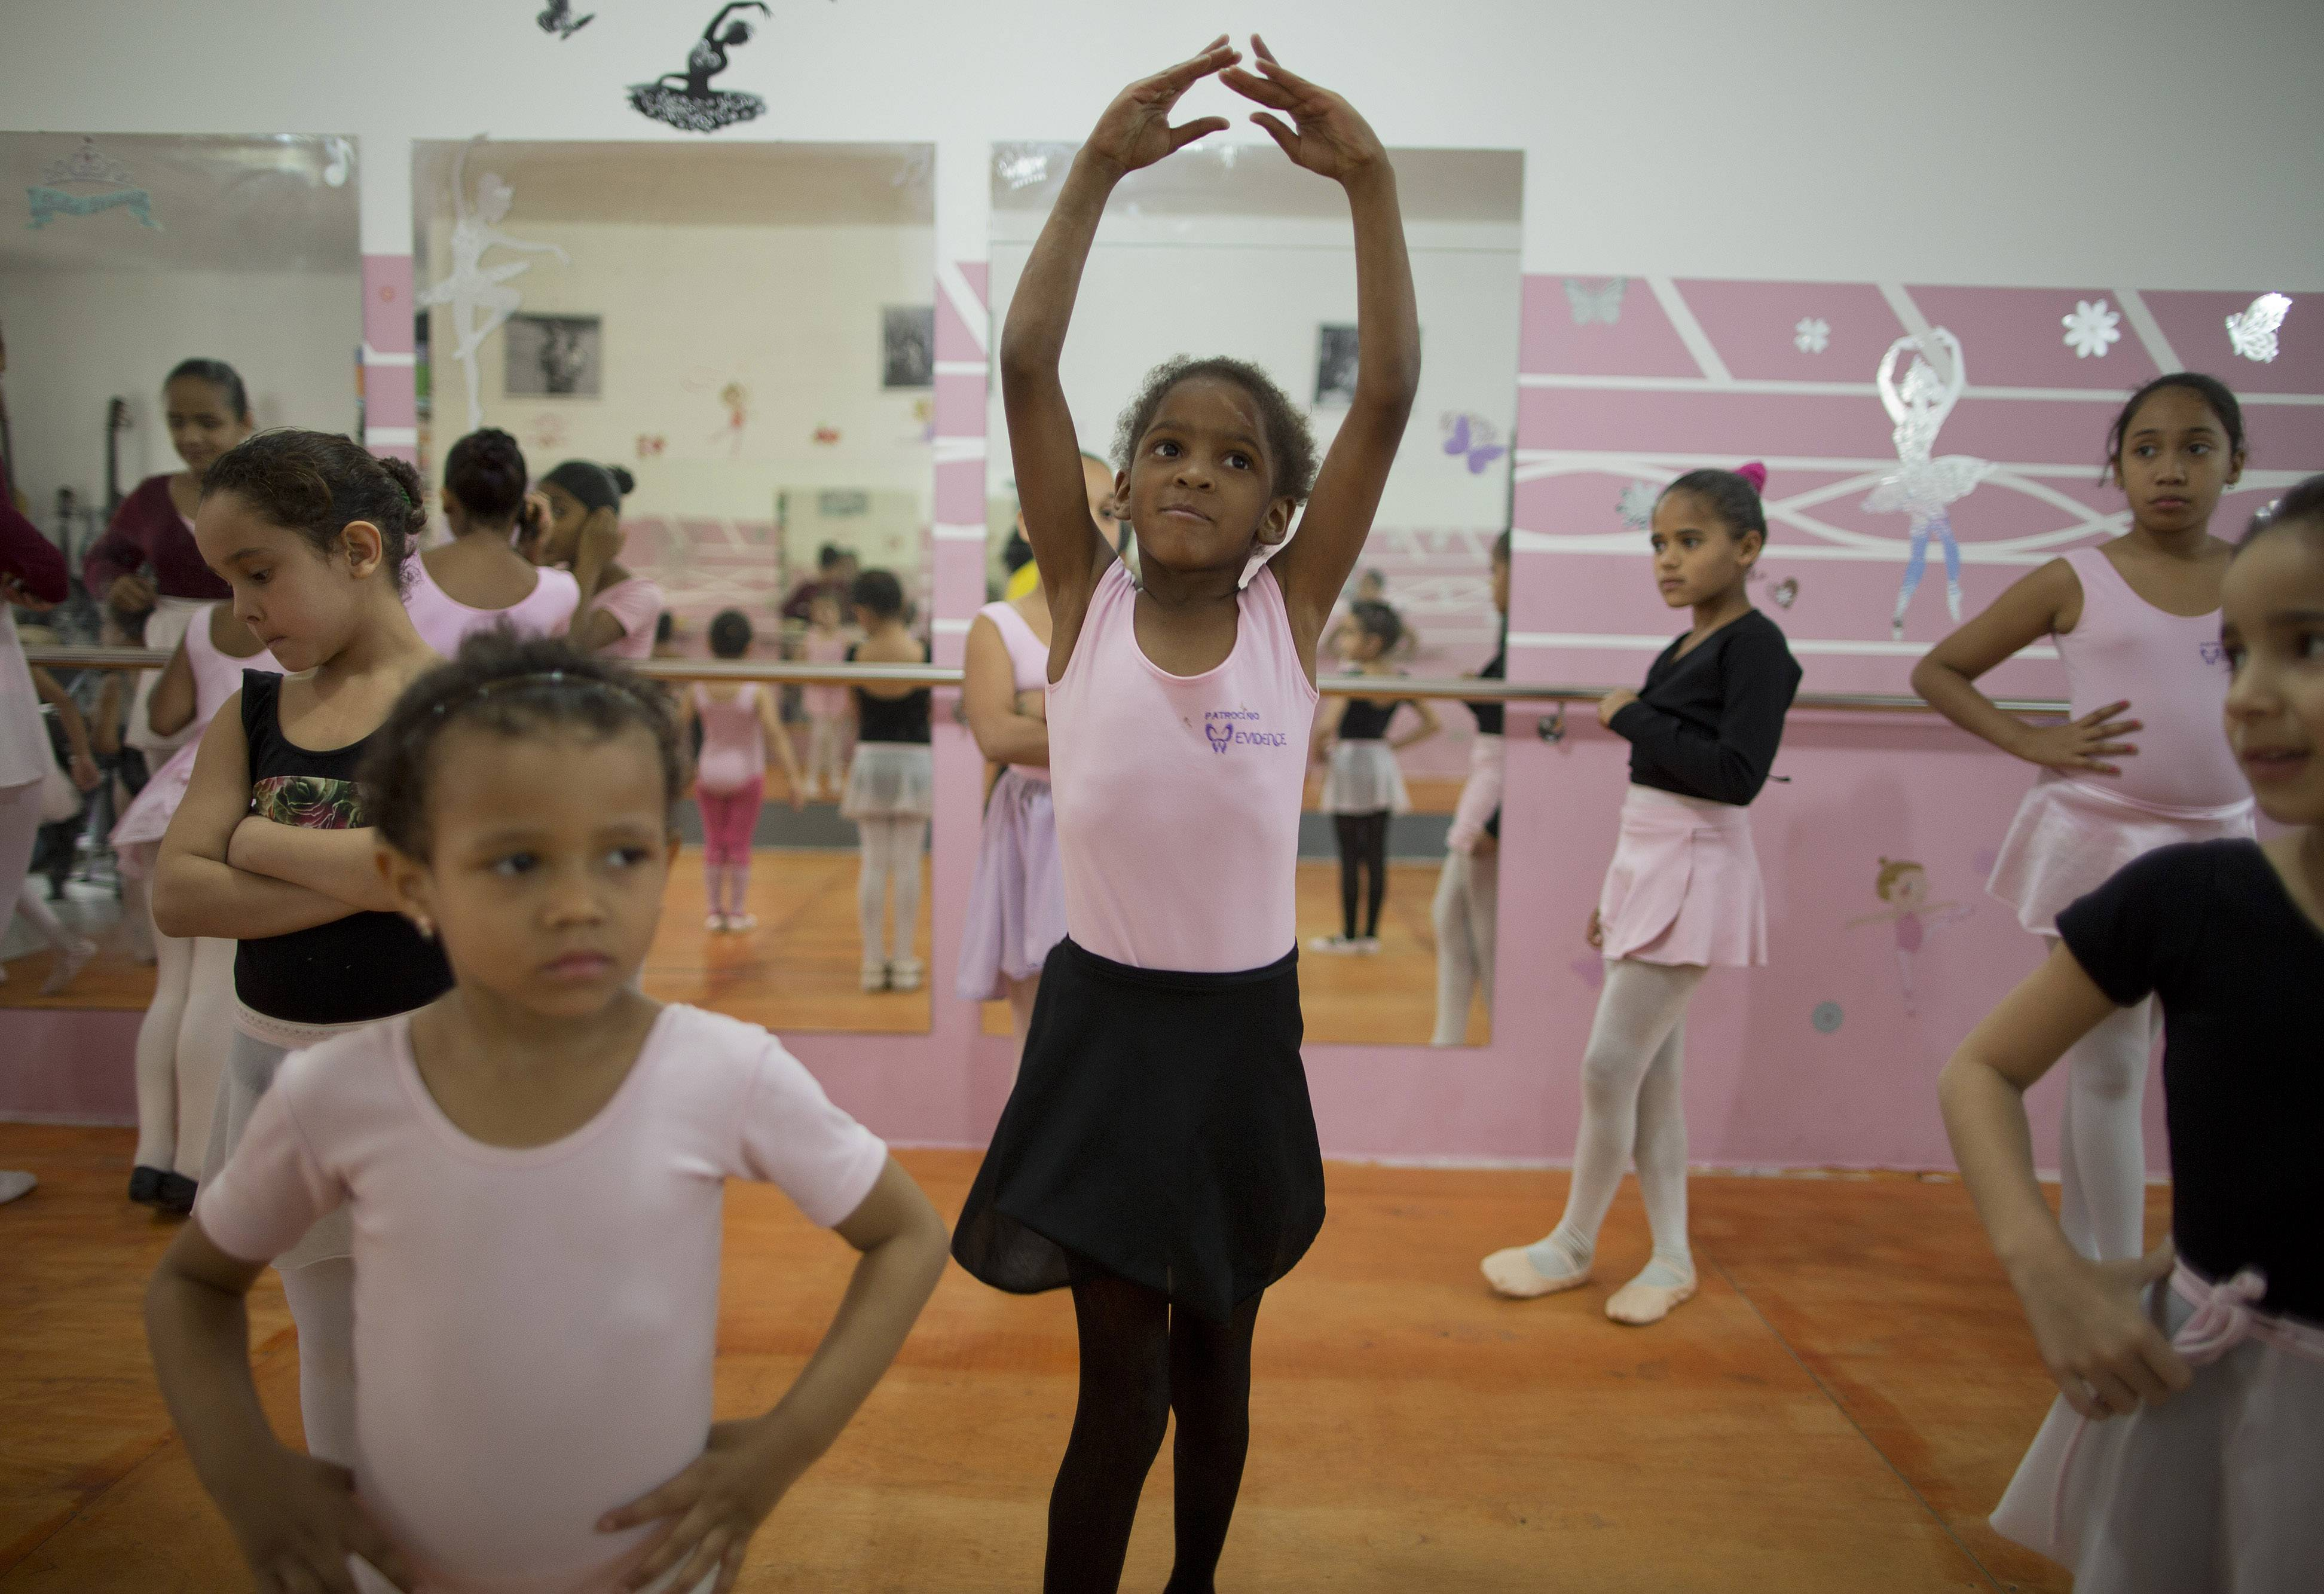 Girls participate in a ballet class at the House of Dreams dance studio in Crackland, one of the roughest neighborhoods in downtown Sao Paulo, Brazil. Growing up amid drug dealers and addicts, some girls have yet to learn how to read. Yet they are learning the graceful art of ballet courtesy of a local church group that also offers them food, counseling and Bible studies.